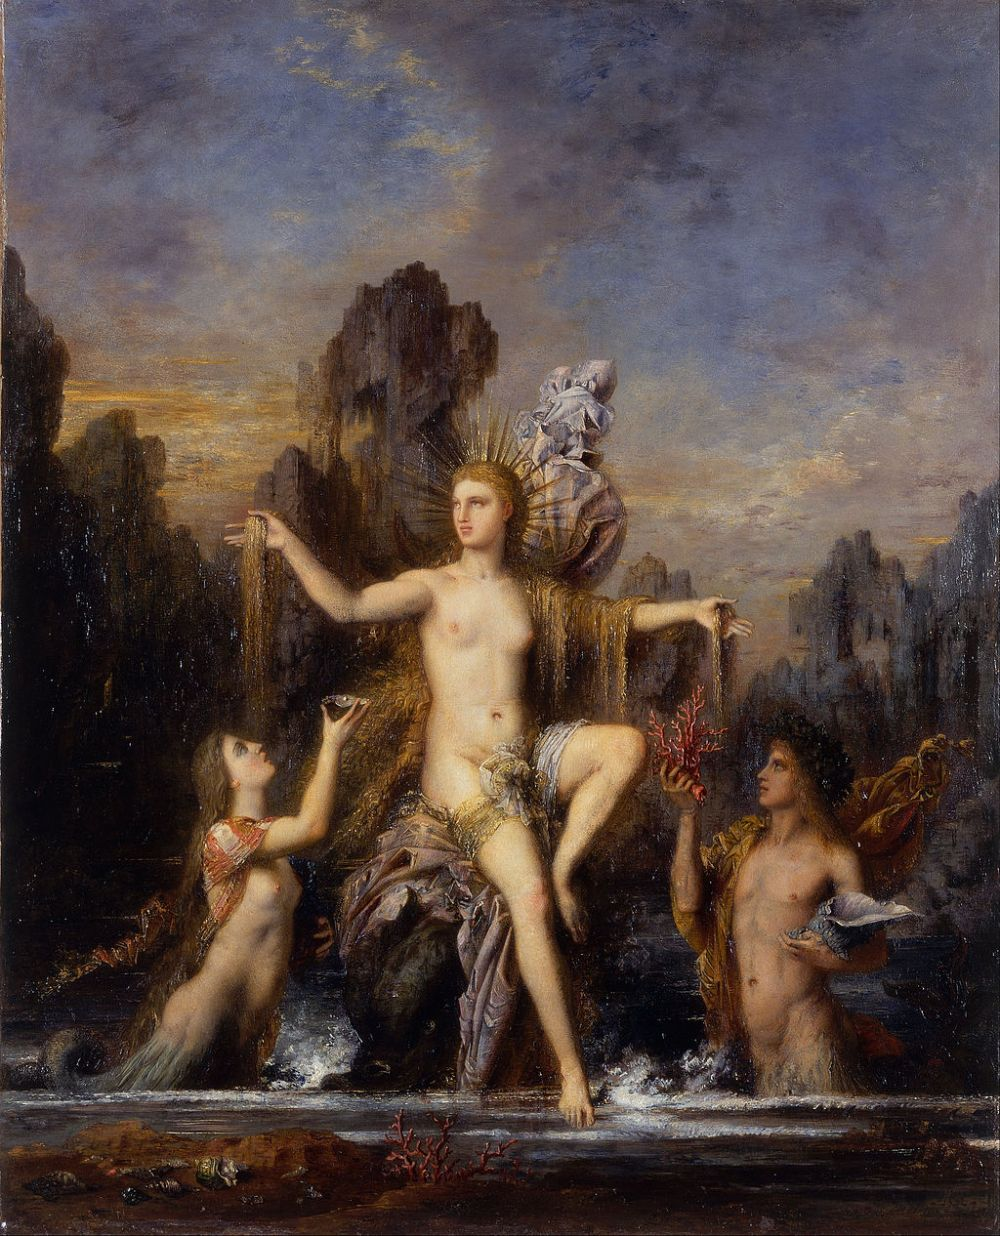 Gustave_Moreau_-_Venus_Rising_from_the_Sea_-_Google_Art_Project